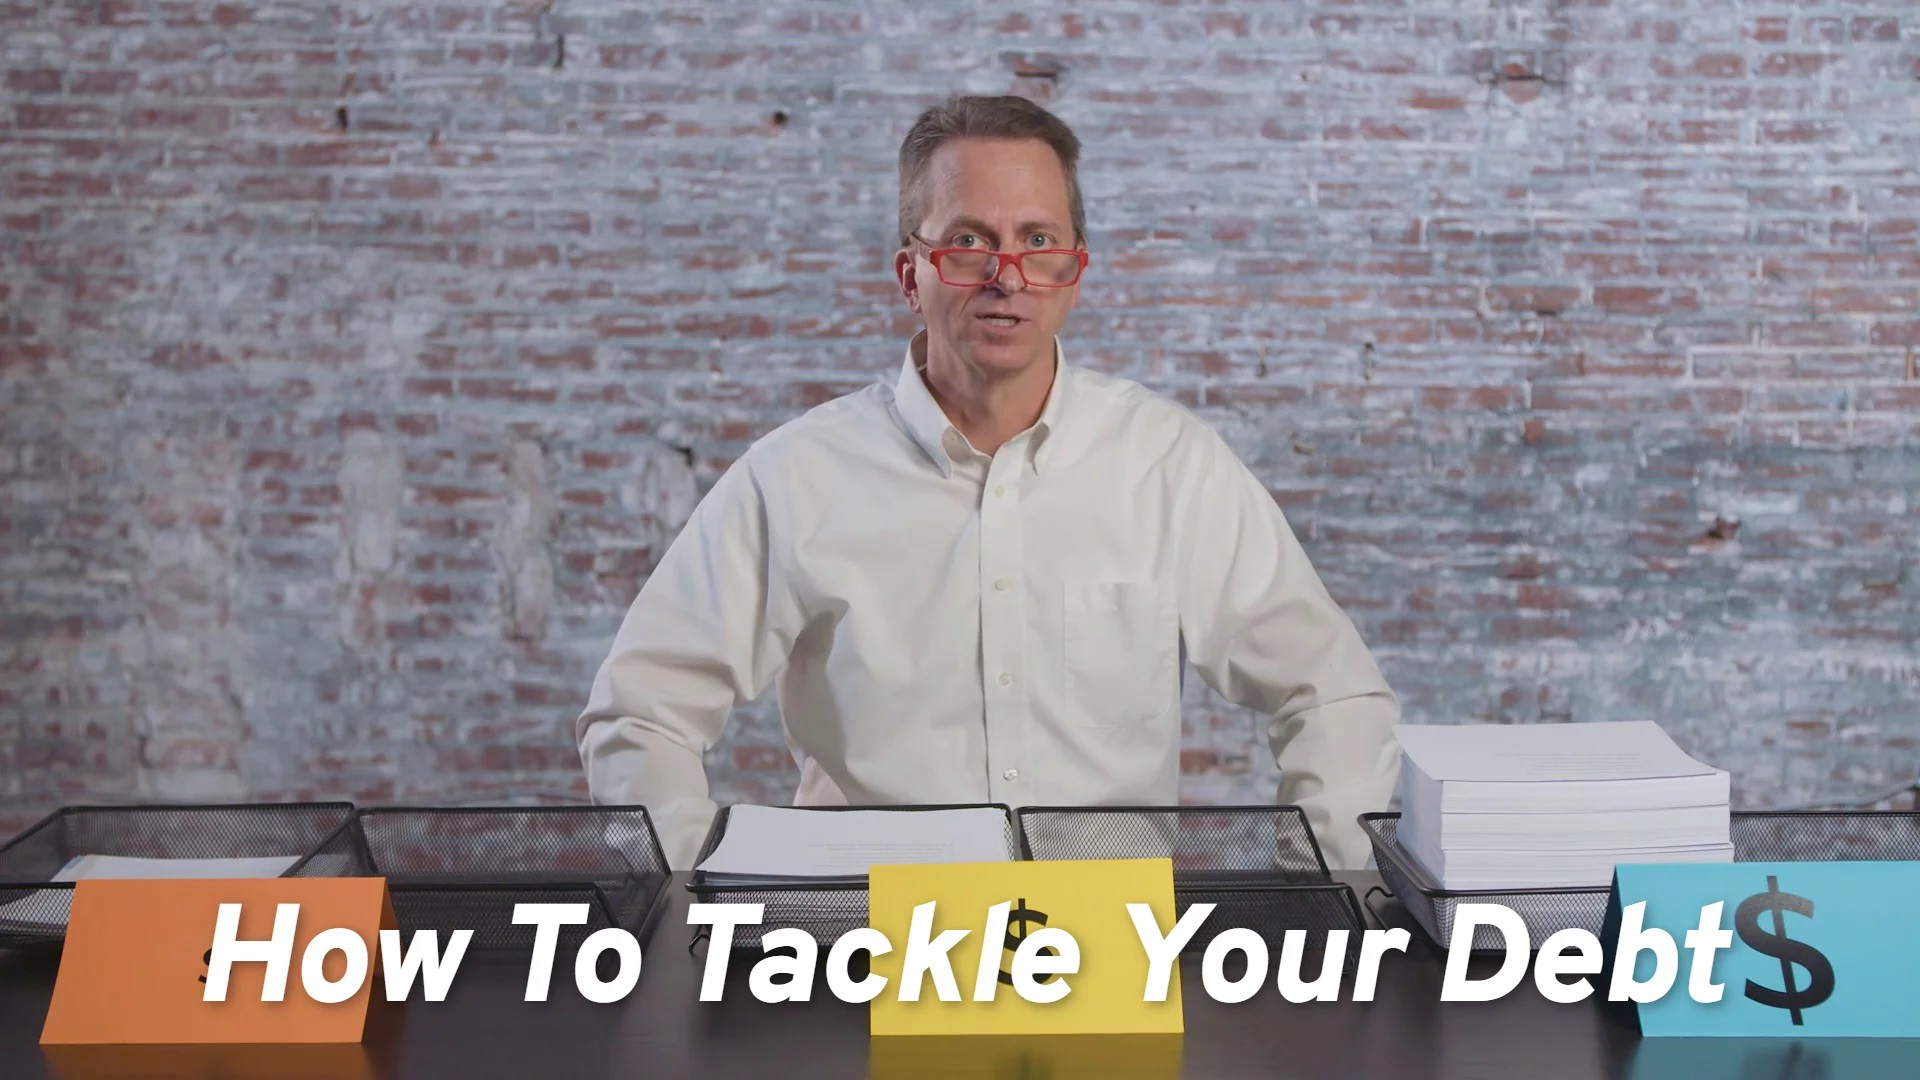 How To Tackle Your Debt